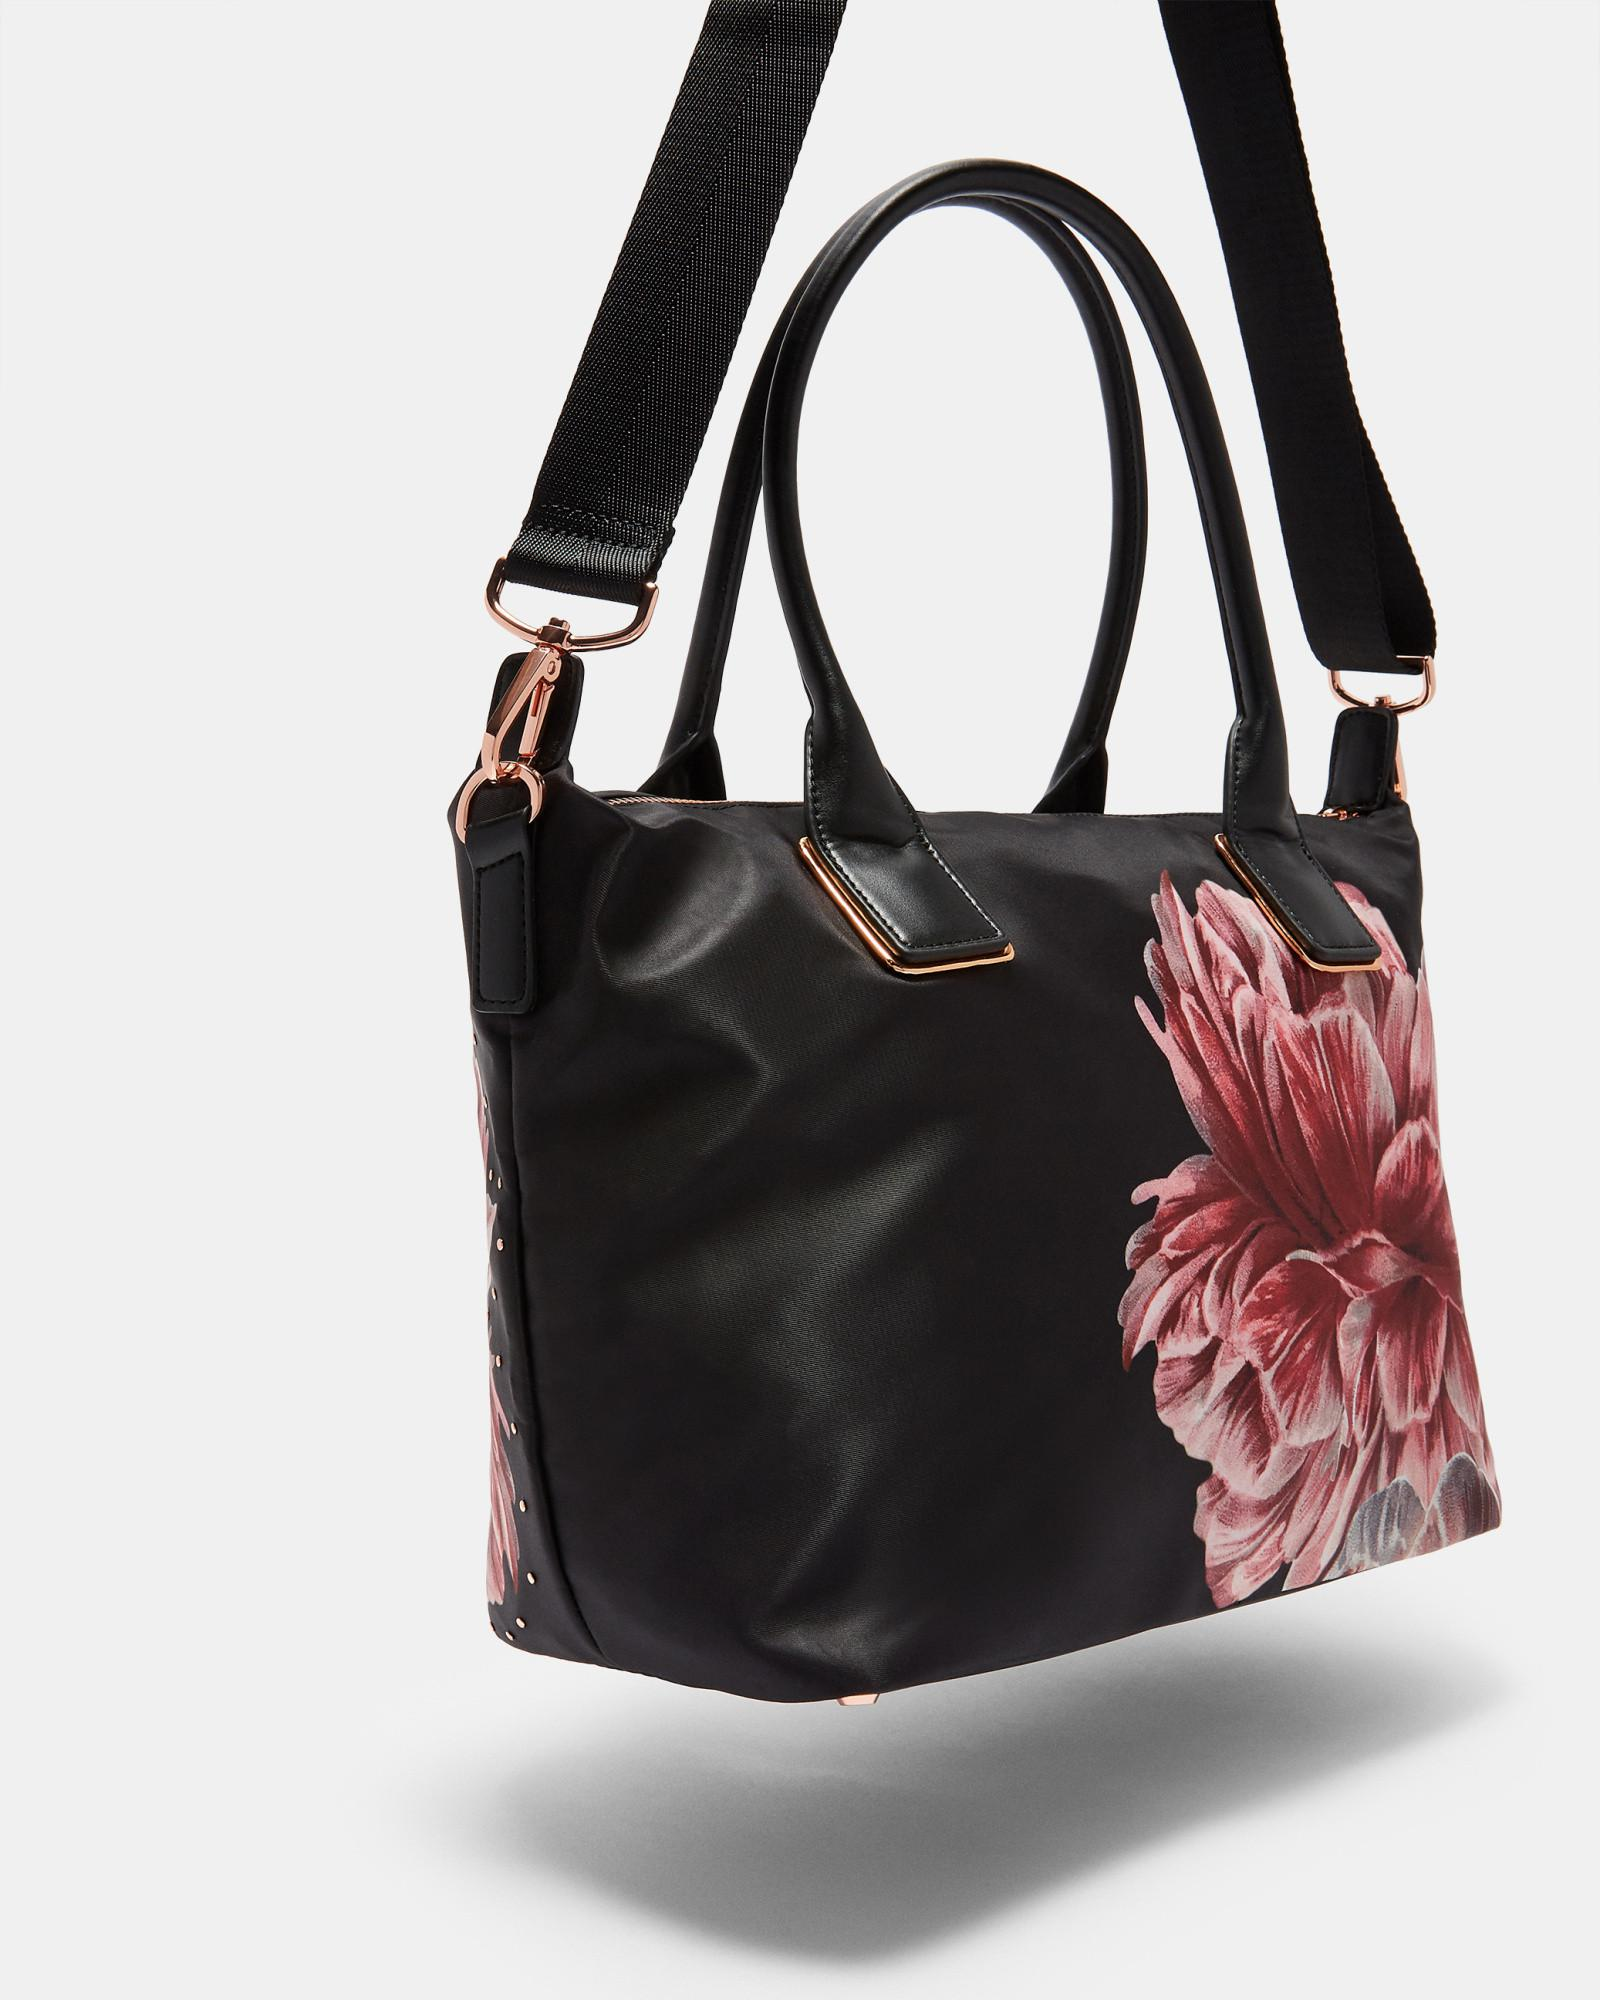 68987a9d5a7bb6 Ted baker tranquility small nylon tote in black lyst jpg 1600x2000 Tote bag  tranquility floral